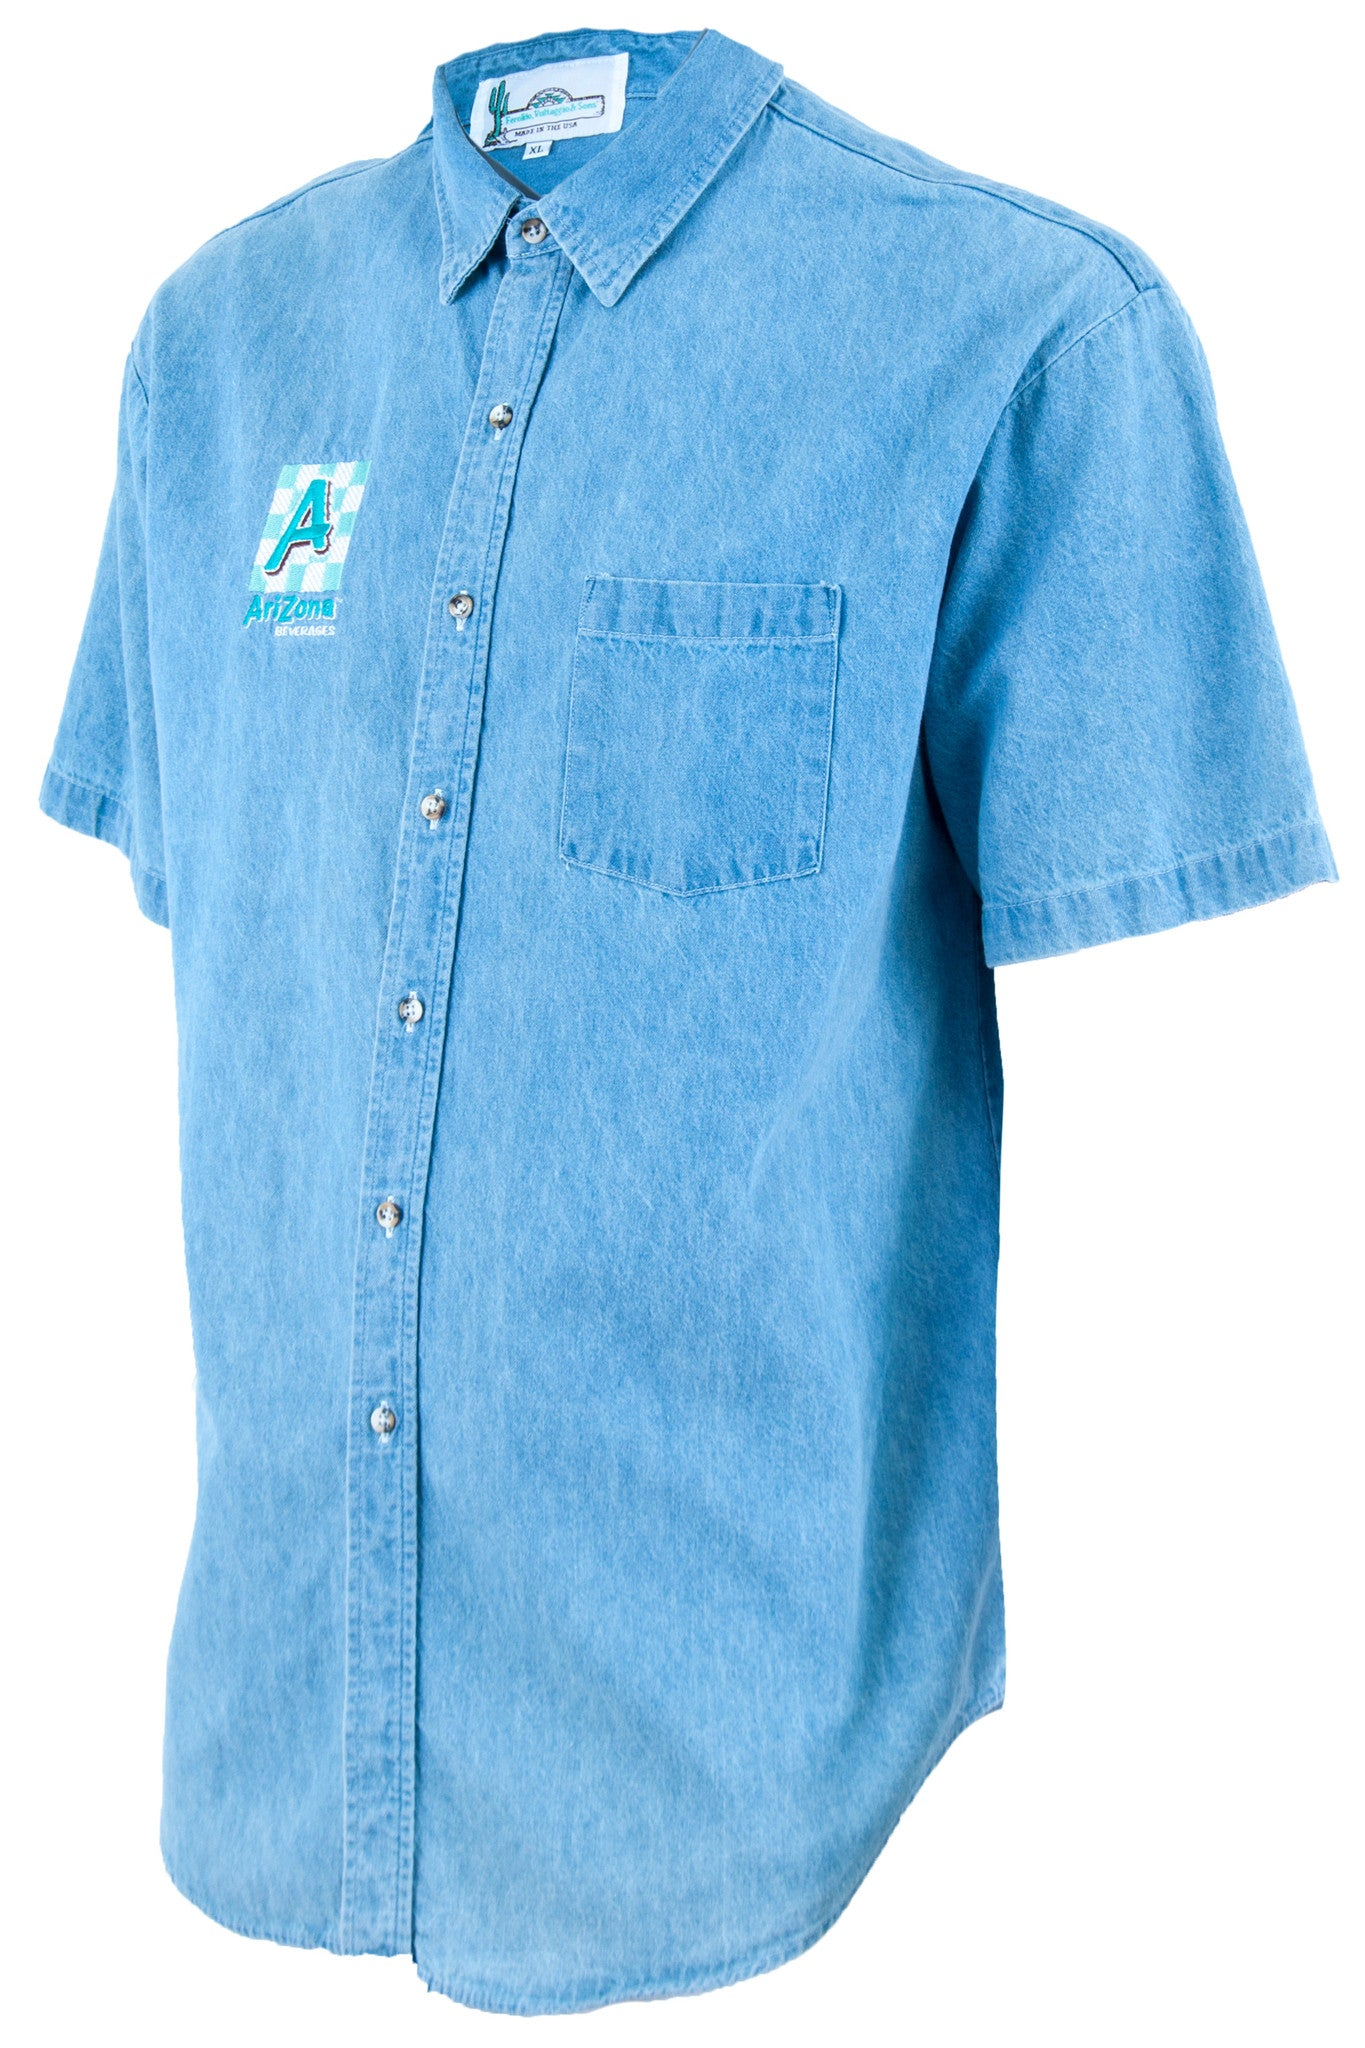 arizona ice tea shirt with short sleeves in denim blue